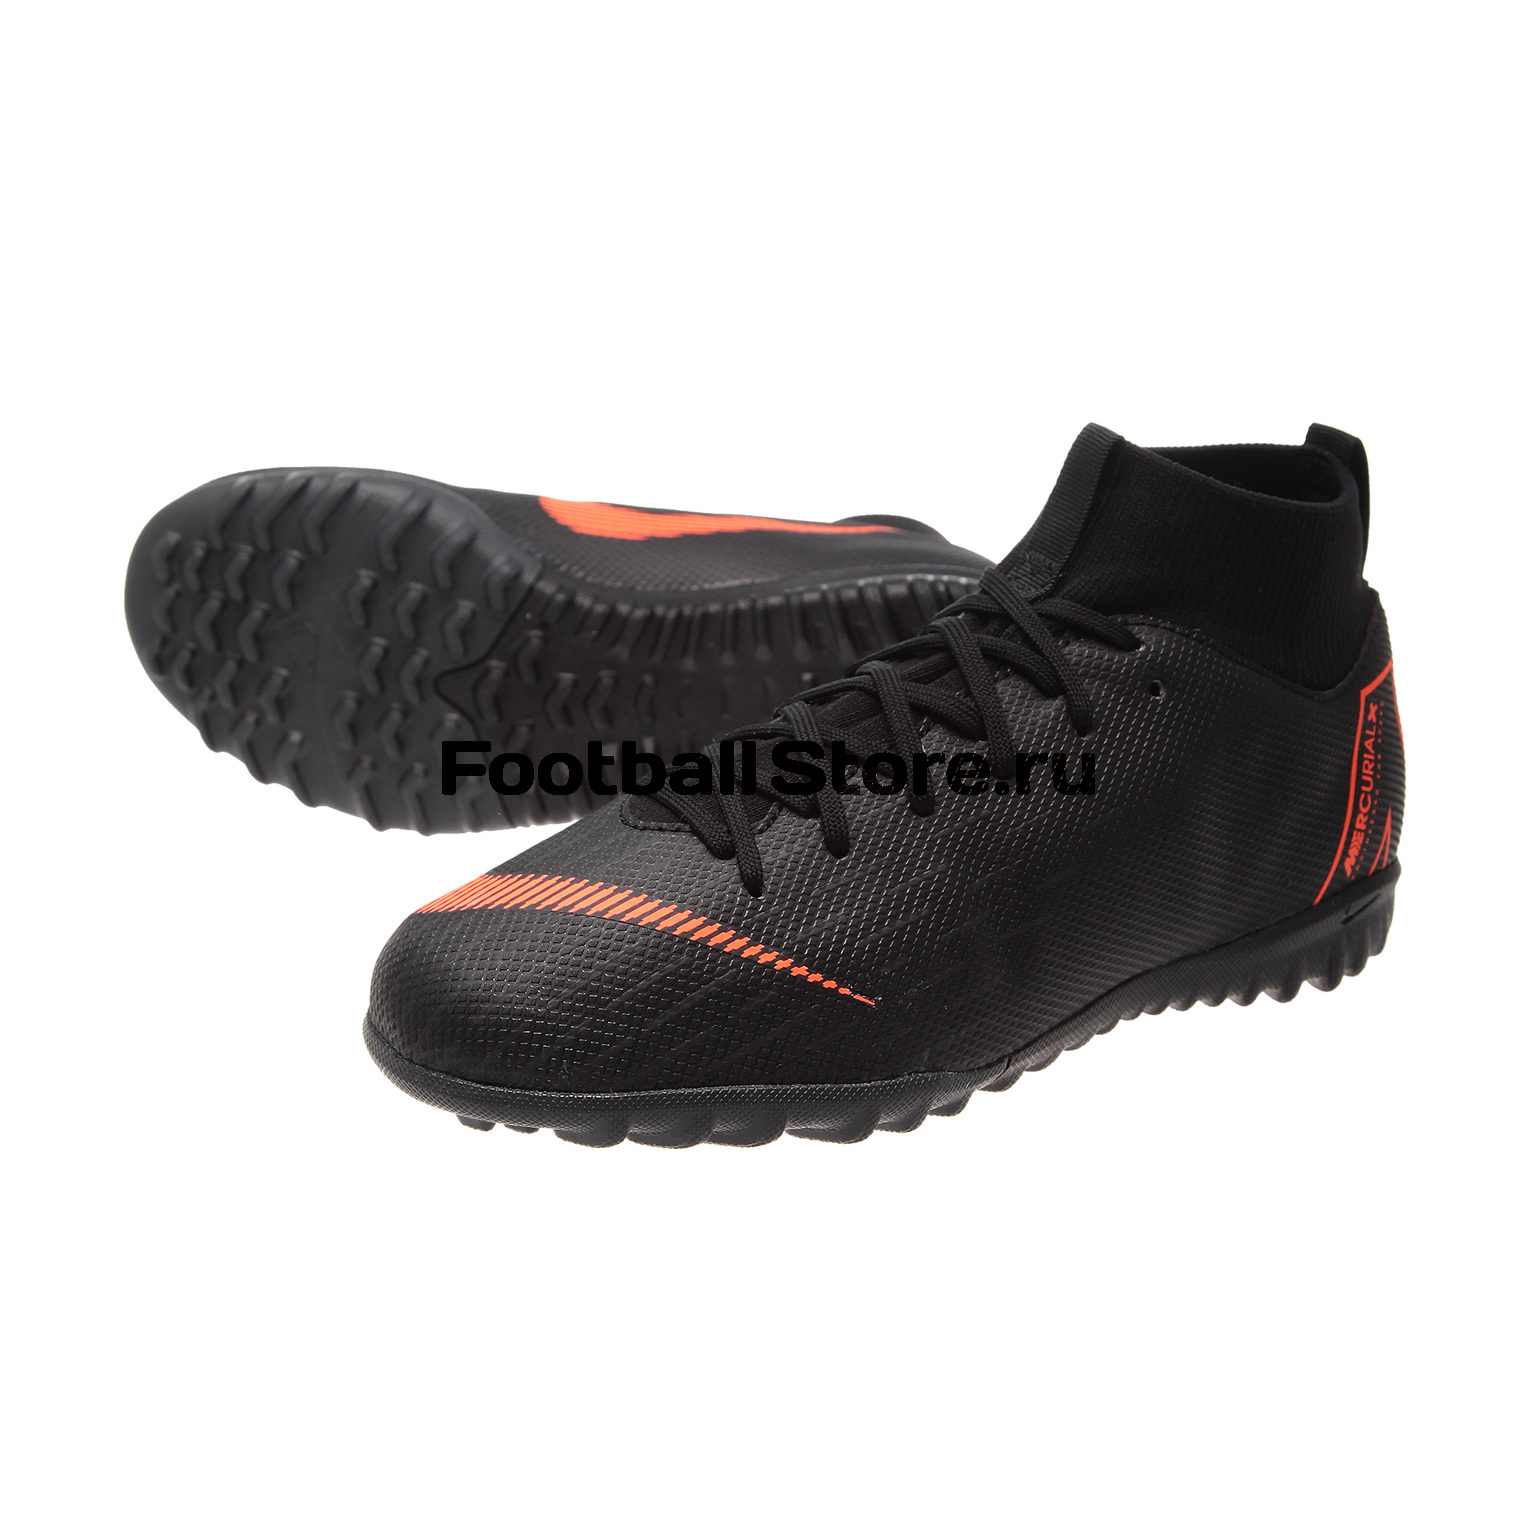 Шиповки Nike JR SuperFly X Academy GS TF AH7344-081 бутсы nike phantom 3 academy ag pro ah8845 081